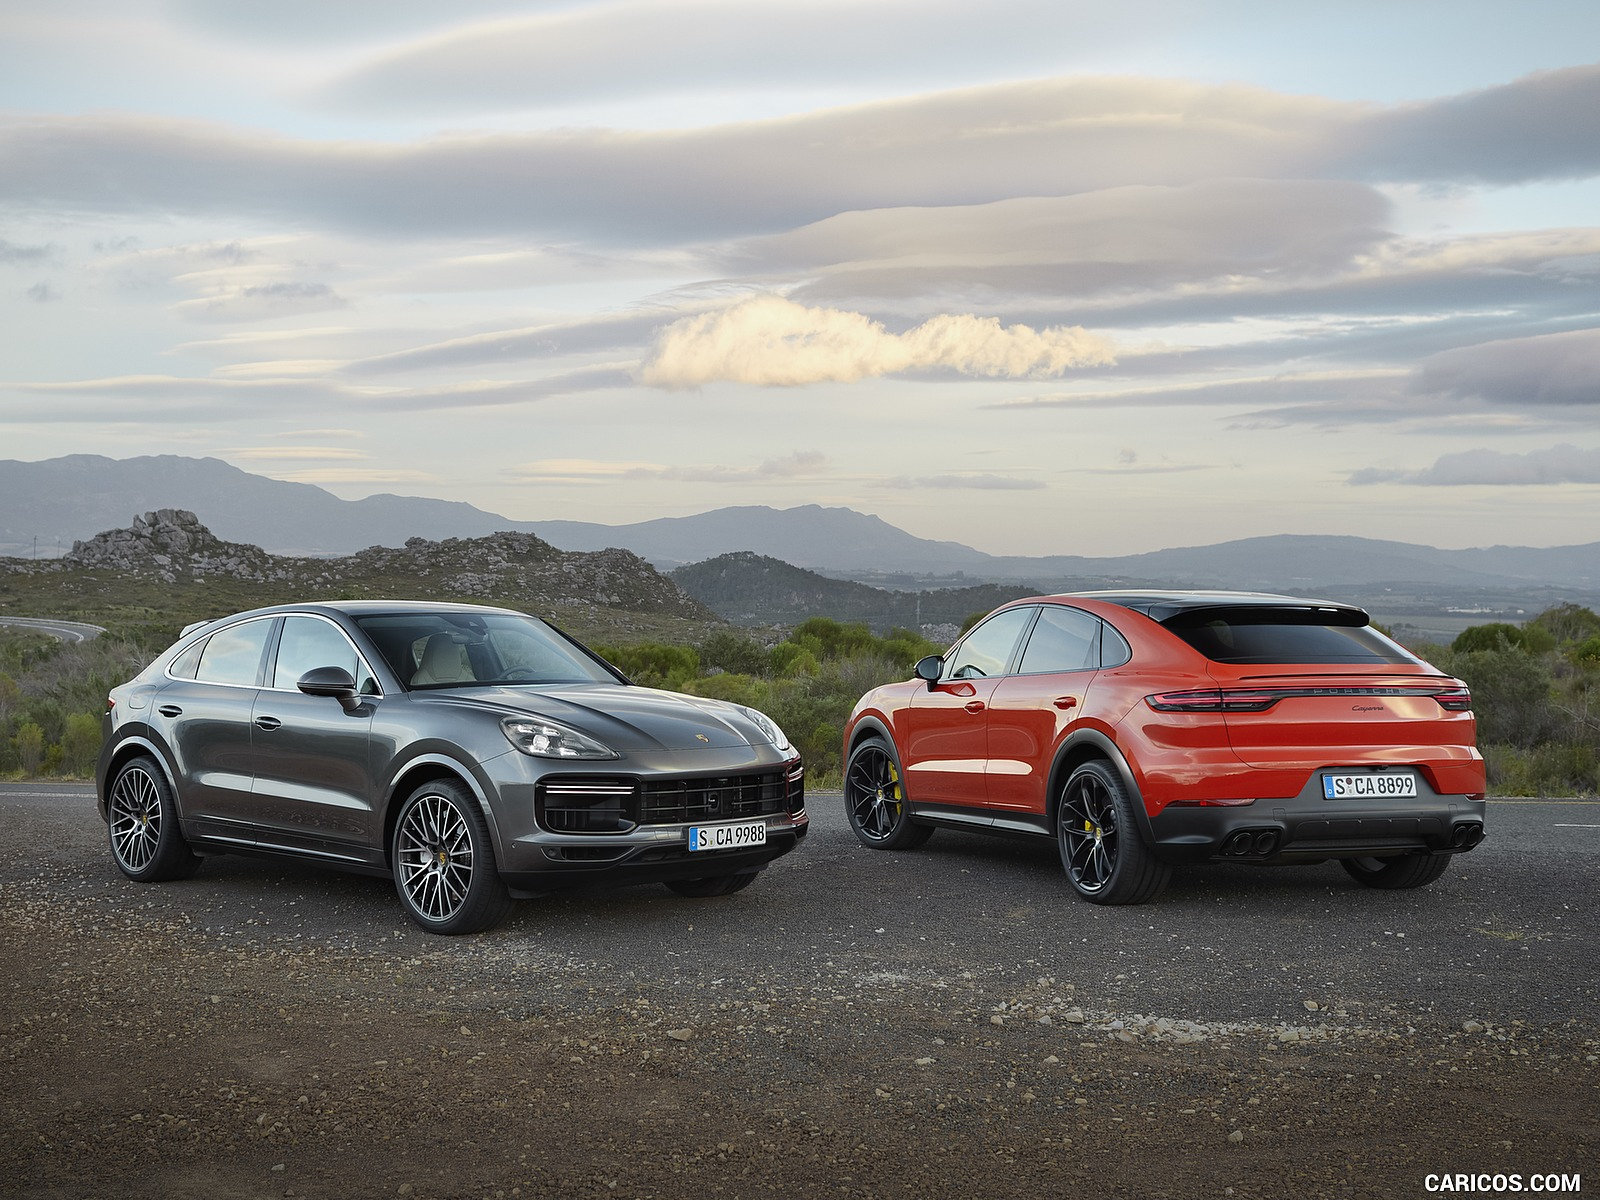 2020 Porsche Cayenne Turbo Coupe and Cayenne Coupe HD Wallpaper 10 1600x1200